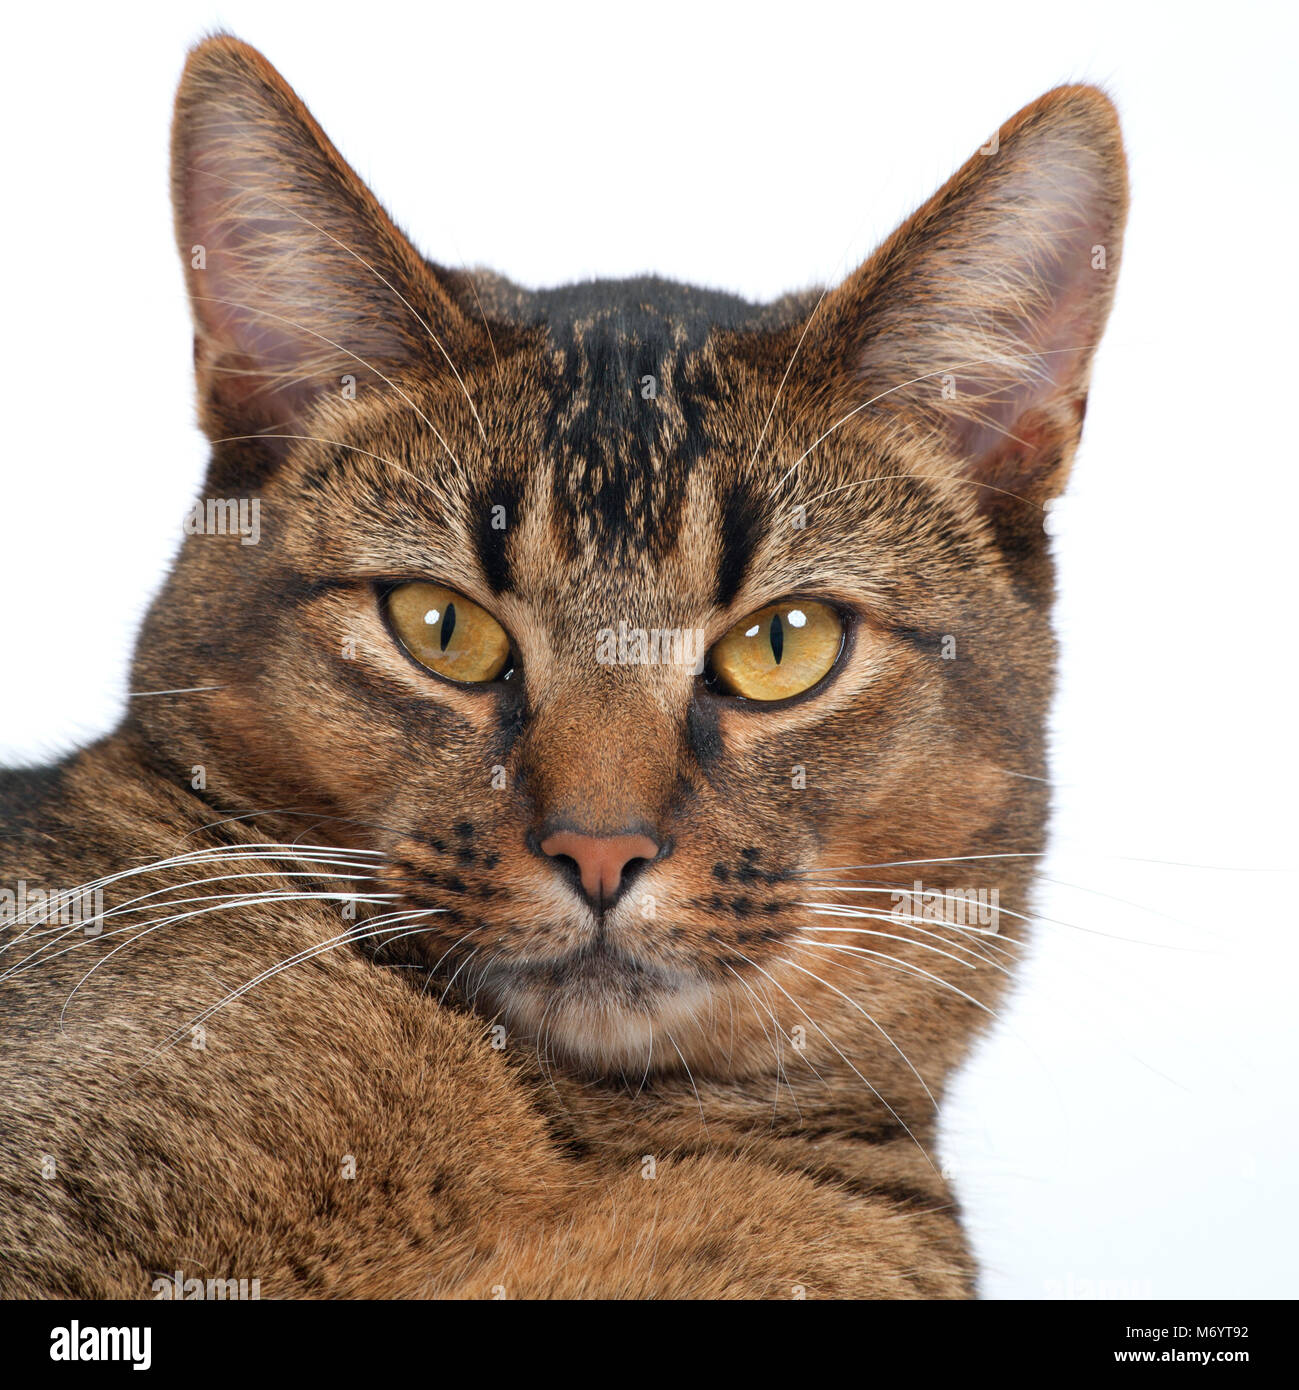 Stunning amber eyes of a part Abyssinian young male cat looking at the camera - Stock Image